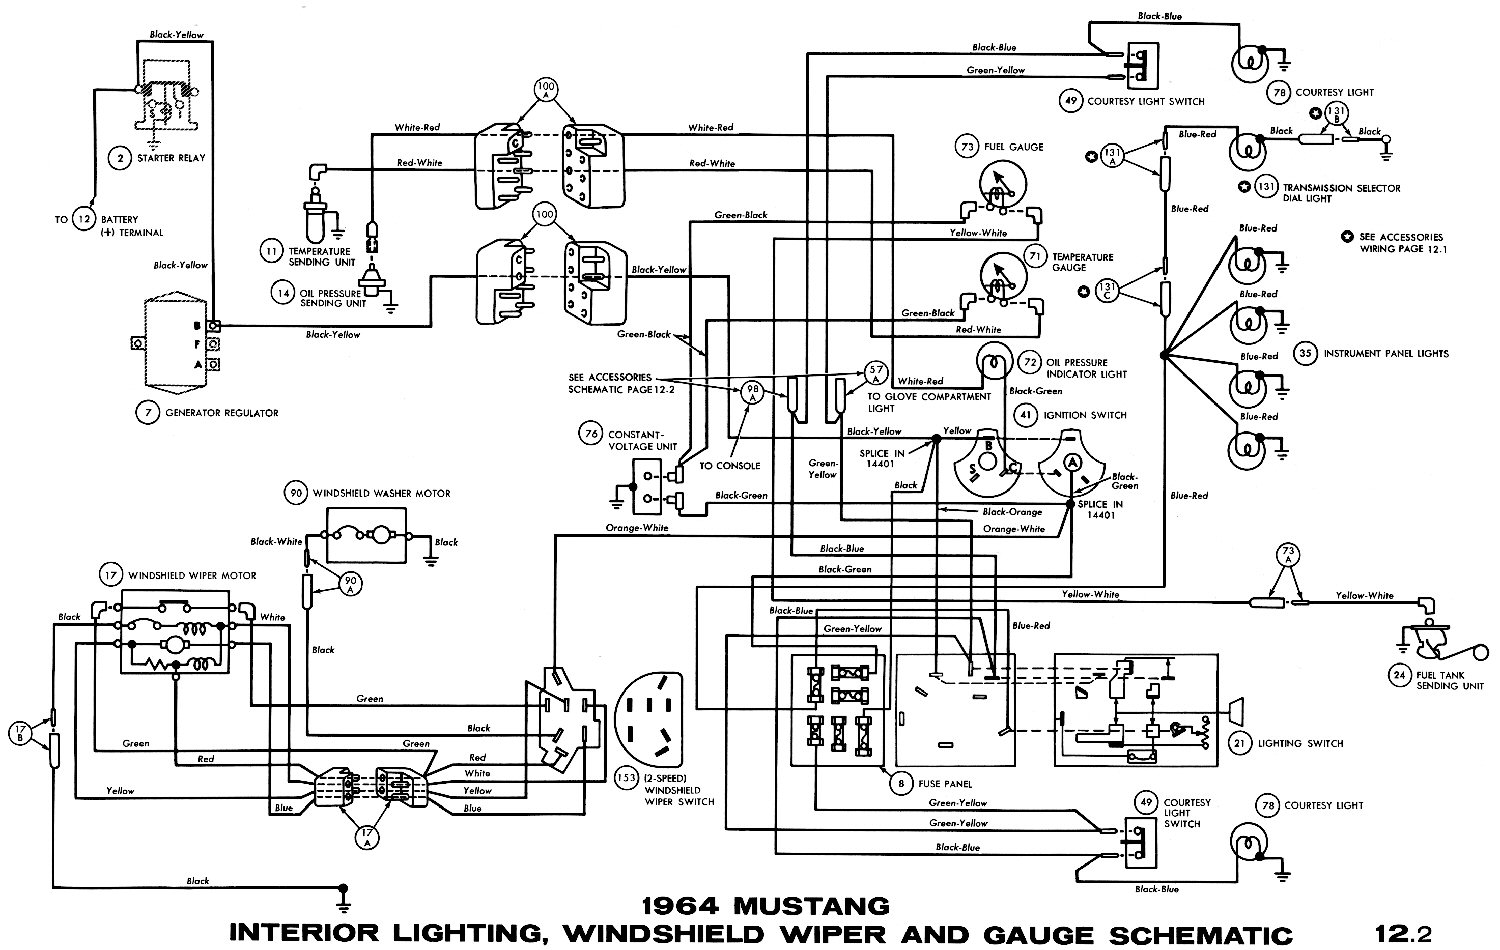 1964k 1964 mustang wiring diagrams average joe restoration 1966 mustang wiring diagrams at nearapp.co